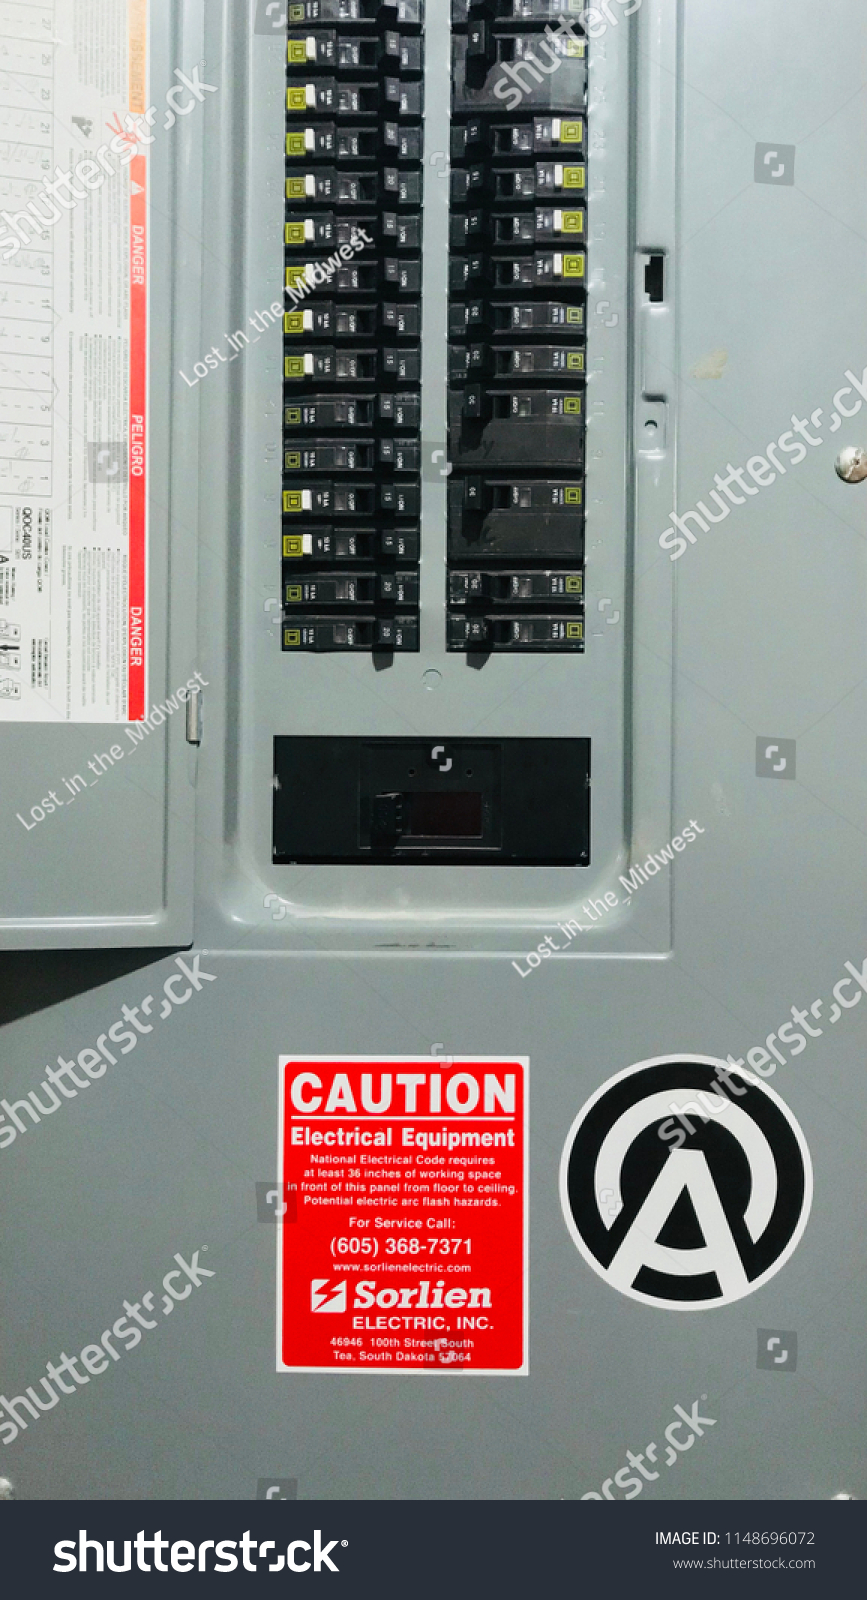 hight resolution of kelley iowa usa 82018 residential fuse stock photo edit now residential fuse box regulations kelley